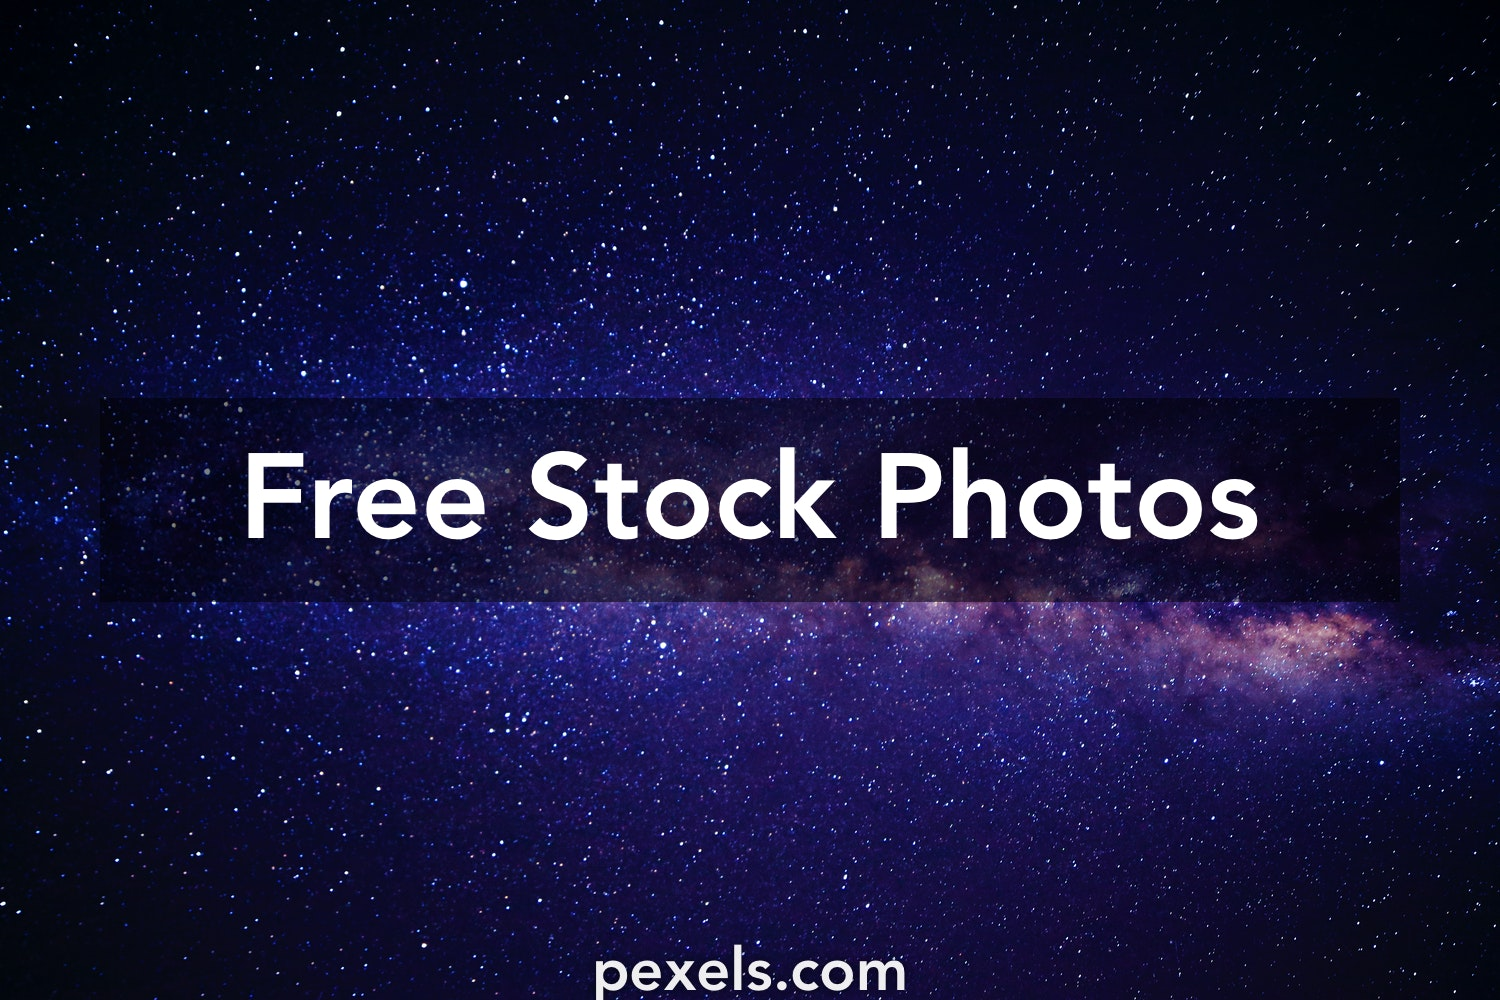 300 Space Pictures Pexels Free Stock Photos